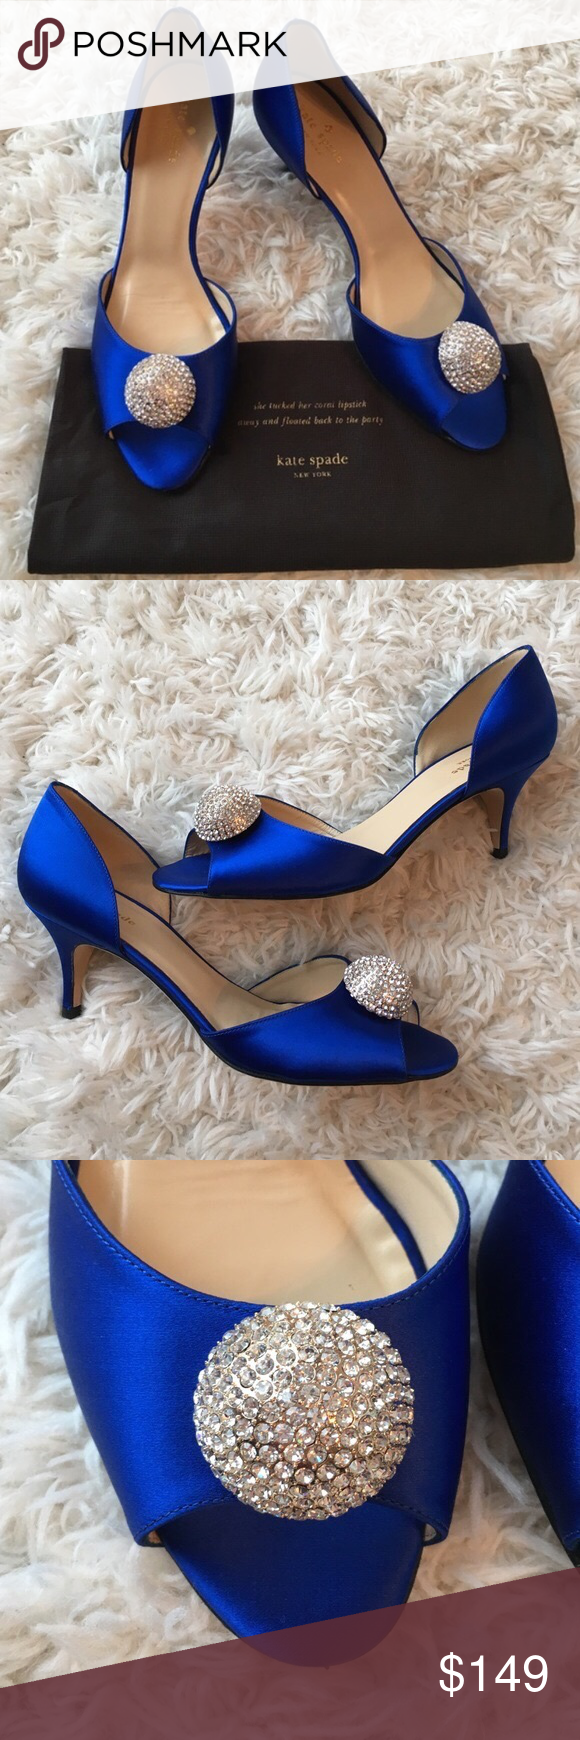 Kate Spade Satin Heels These heels are a pretty vibrant blue satin. There's a crystal detail at the top of the shoe in front. I've worn once so these are in excellent shape. Reasonable offers accepted with the offer button. kate spade Shoes